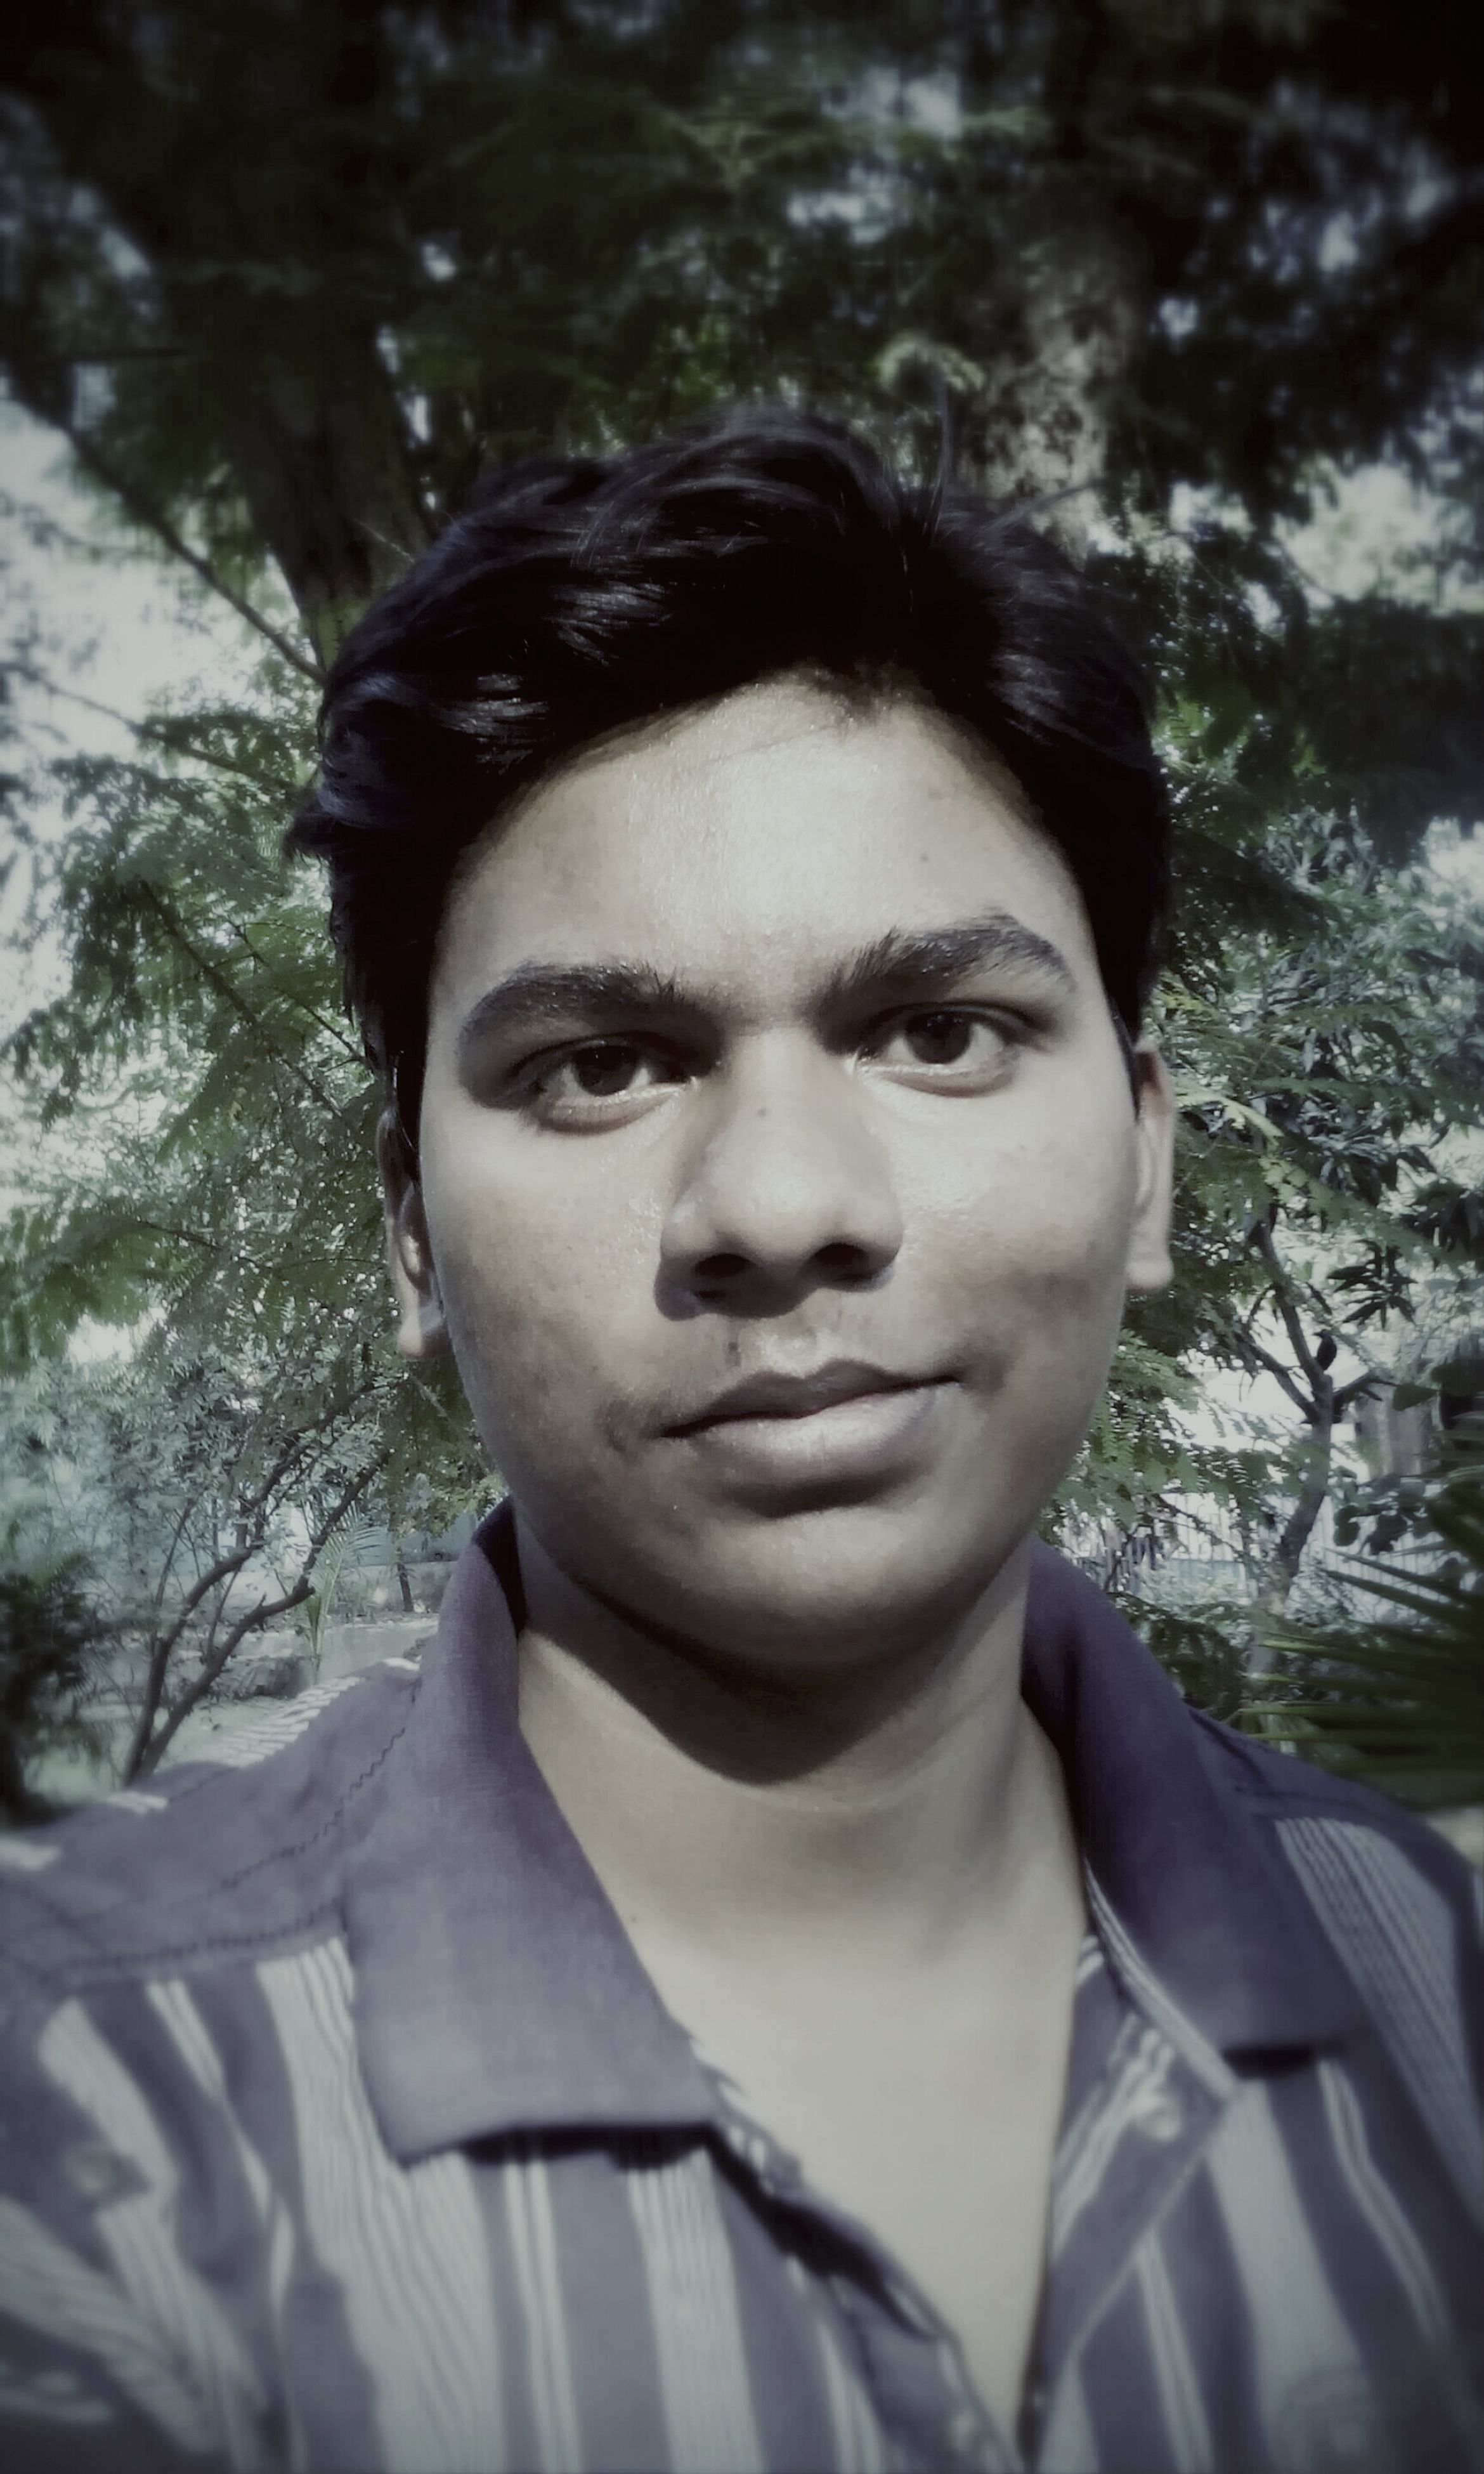 portrait, young adult, looking at camera, headshot, person, lifestyles, front view, young men, leisure activity, serious, close-up, focus on foreground, human face, tree, casual clothing, confidence, contemplation